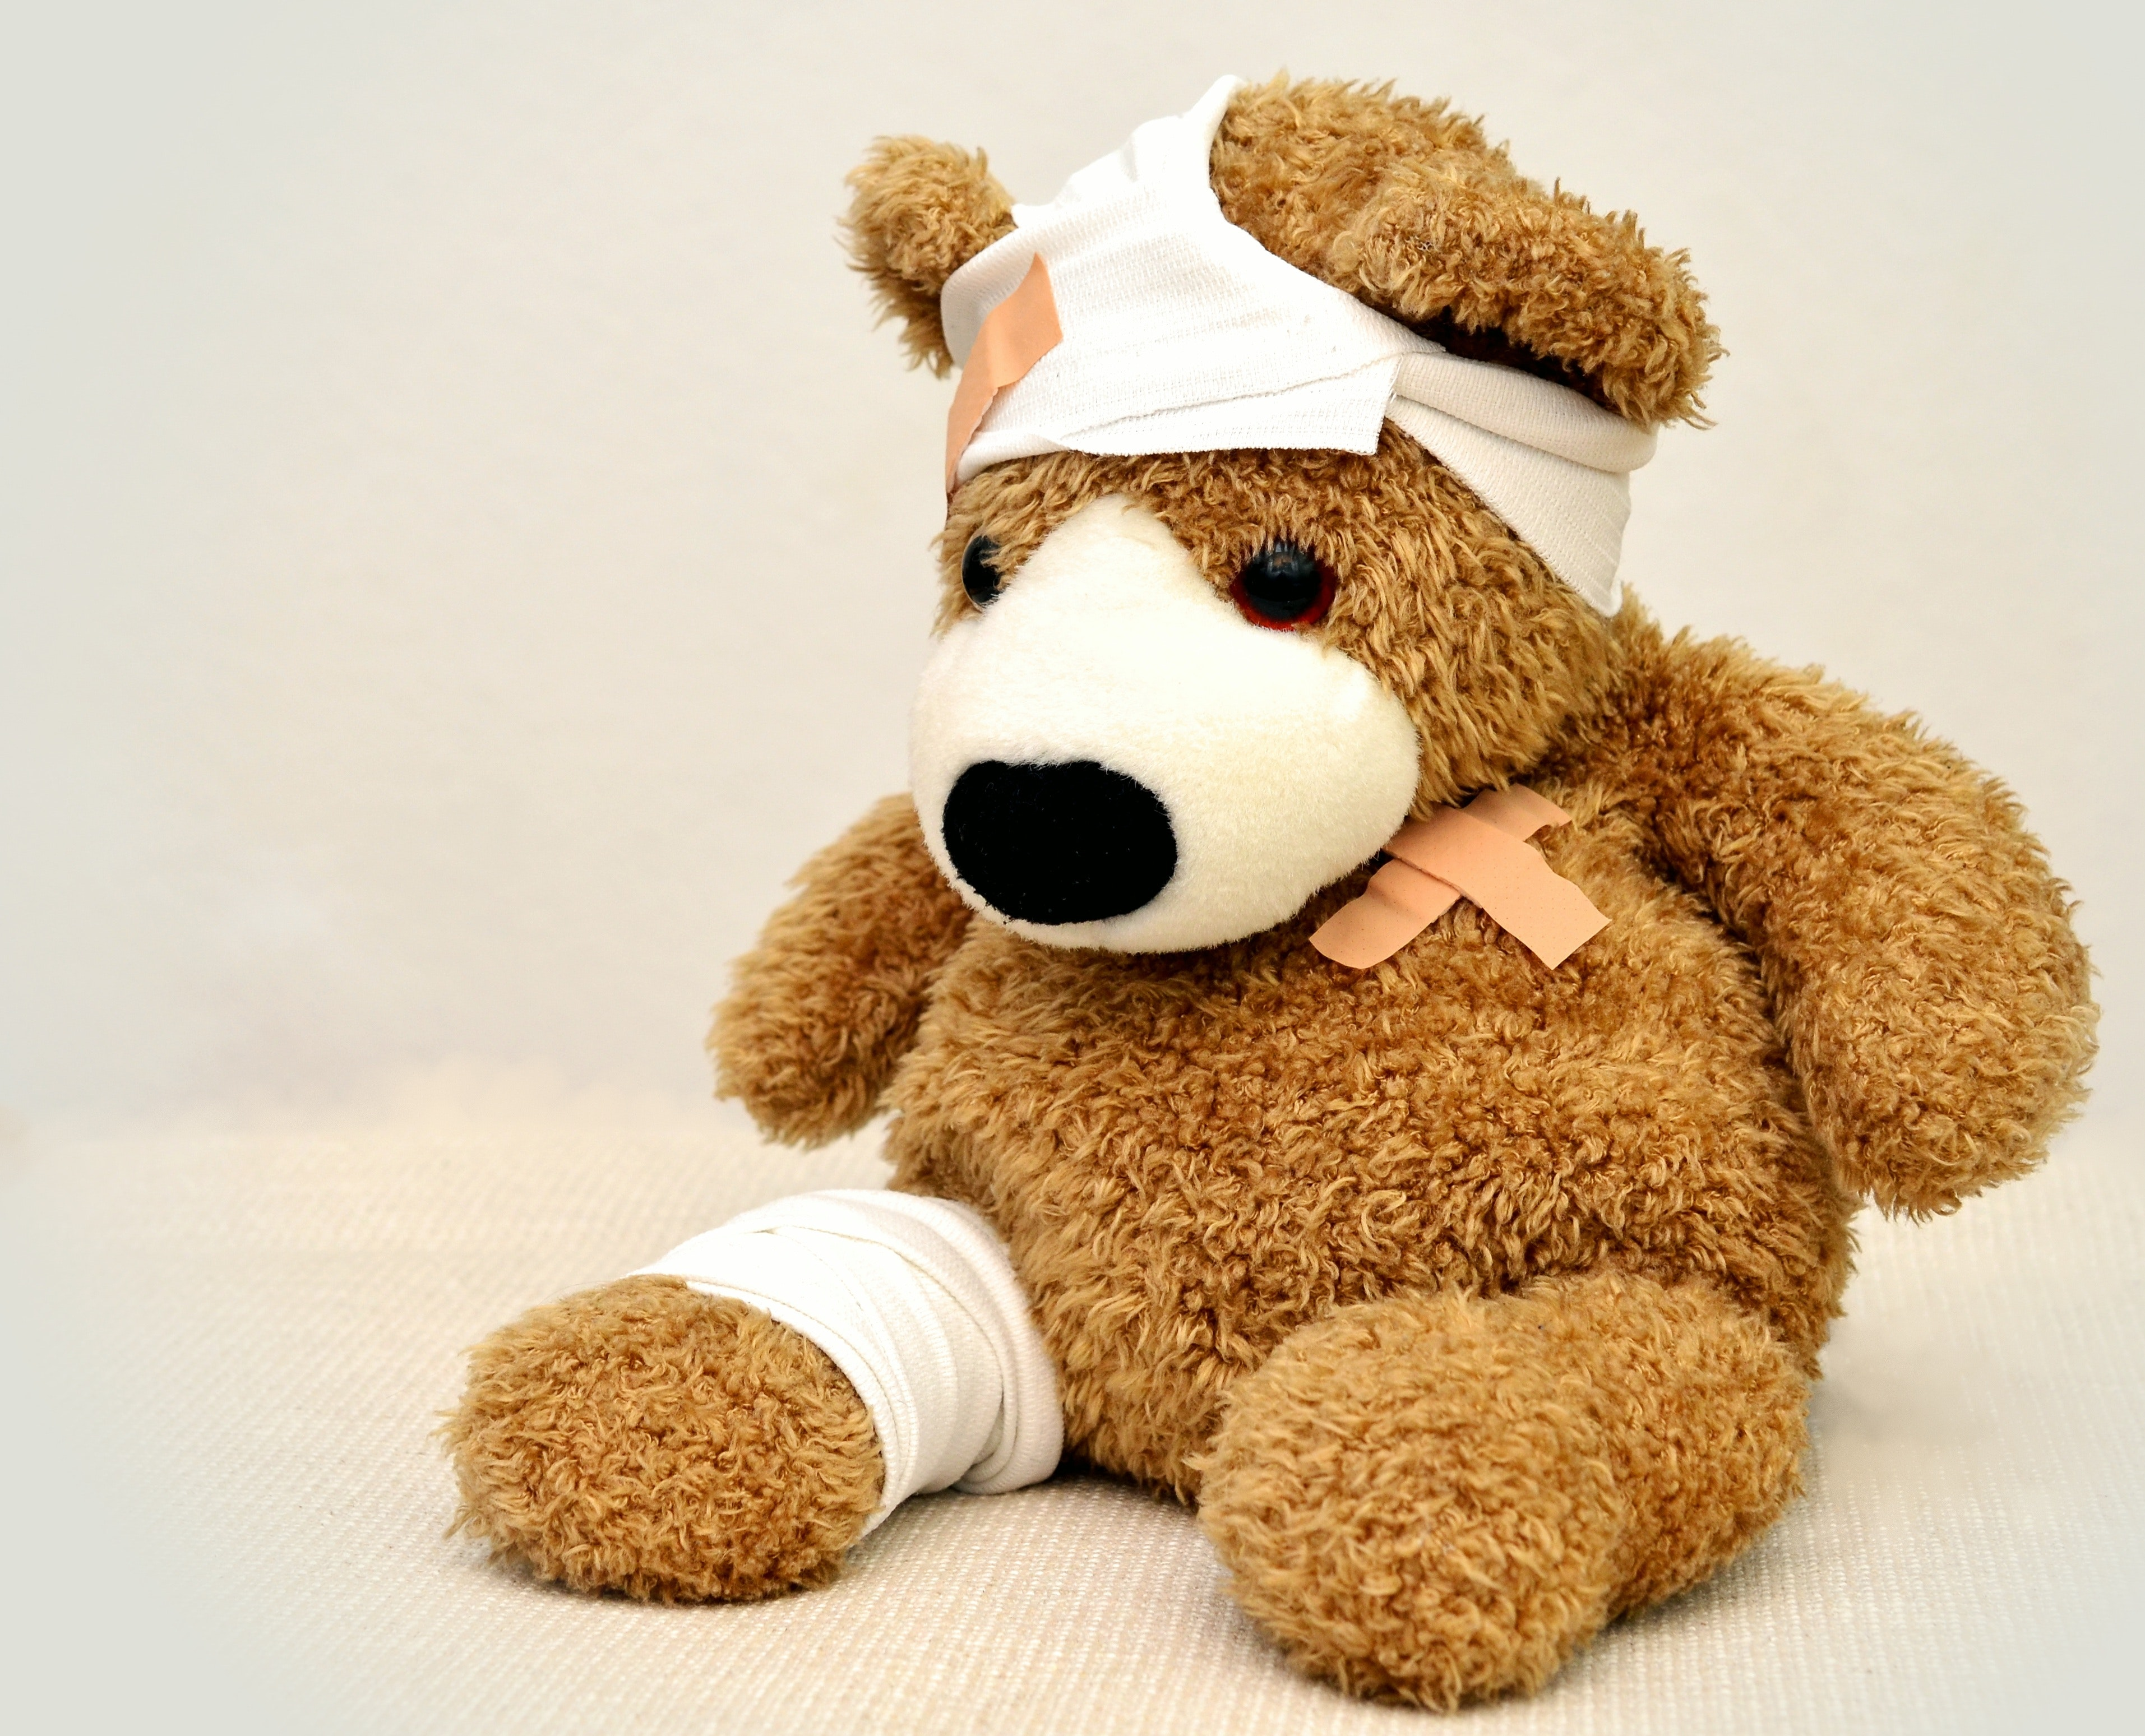 Common Childhood Illnesses & How to Prevent Them